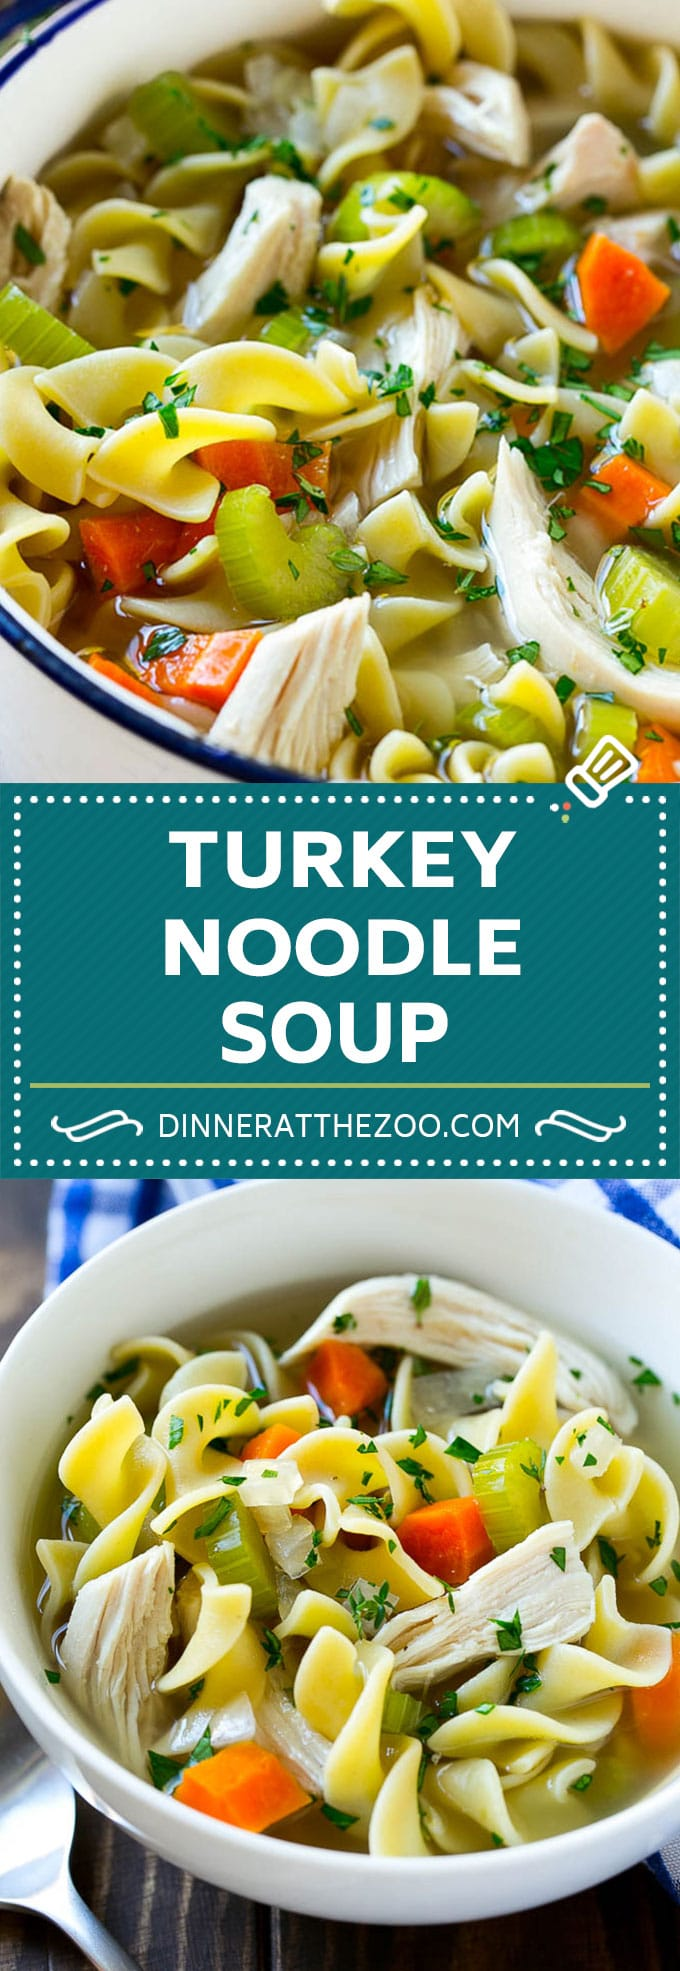 Turkey Noodle Soup | Leftover Turkey Recipe | Turkey Soup